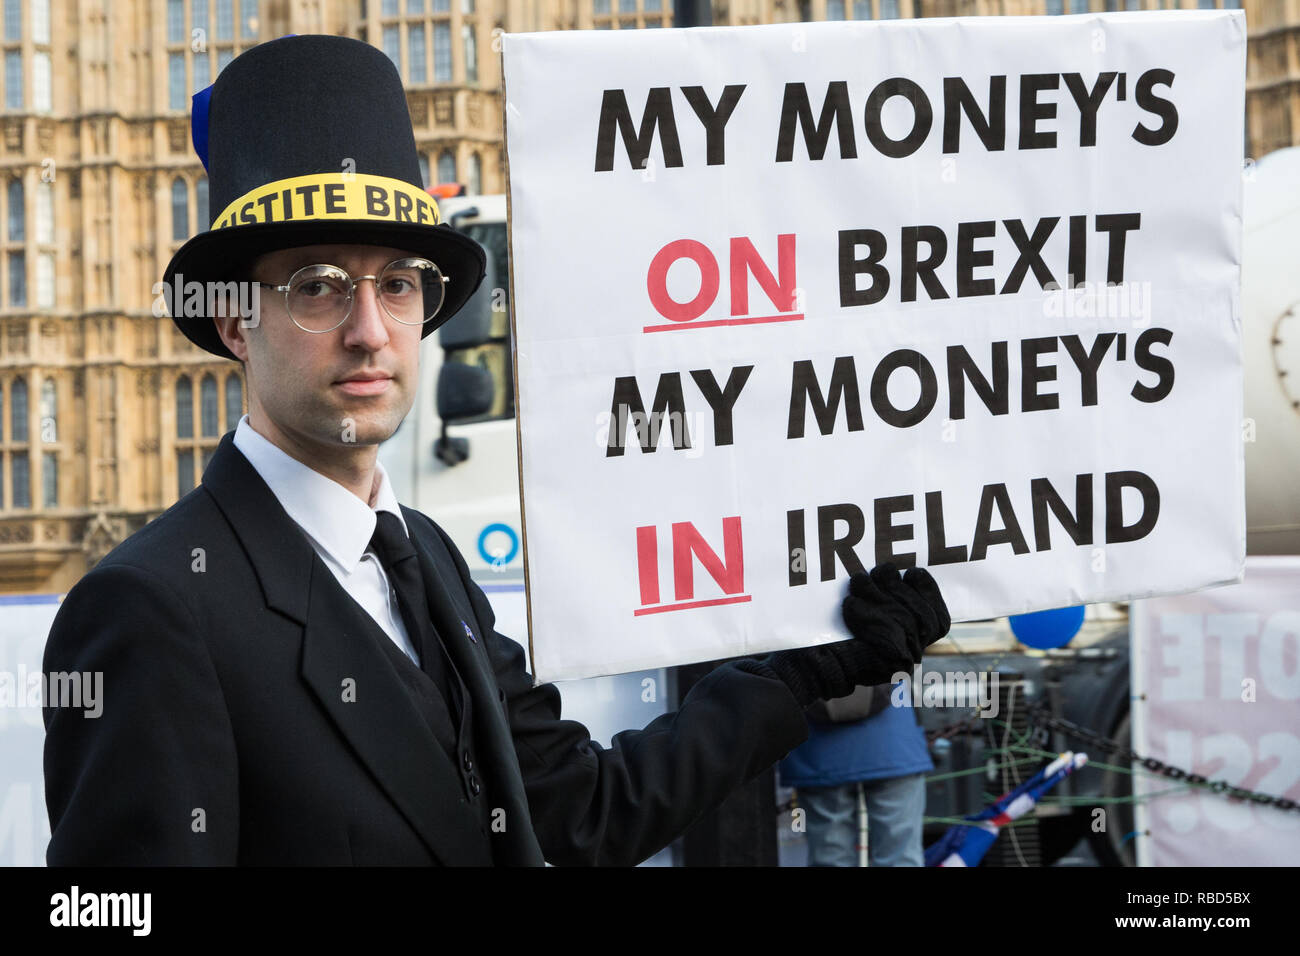 London, UK. 9th Jan, 2019. An anti-Brexit activist disguised as Jacob Rees-Mogg and carrying a sign reading 'My Money's on Brexit My Money's in Ireland' protests with pro-EU group SODEM (Stand of Defiance European Movement) outside Parliament on the first day of the debate in the House of Commons on Prime Minister Theresa May's proposed Brexit withdrawal agreement. Credit: Mark Kerrison/Alamy Live News - Stock Image